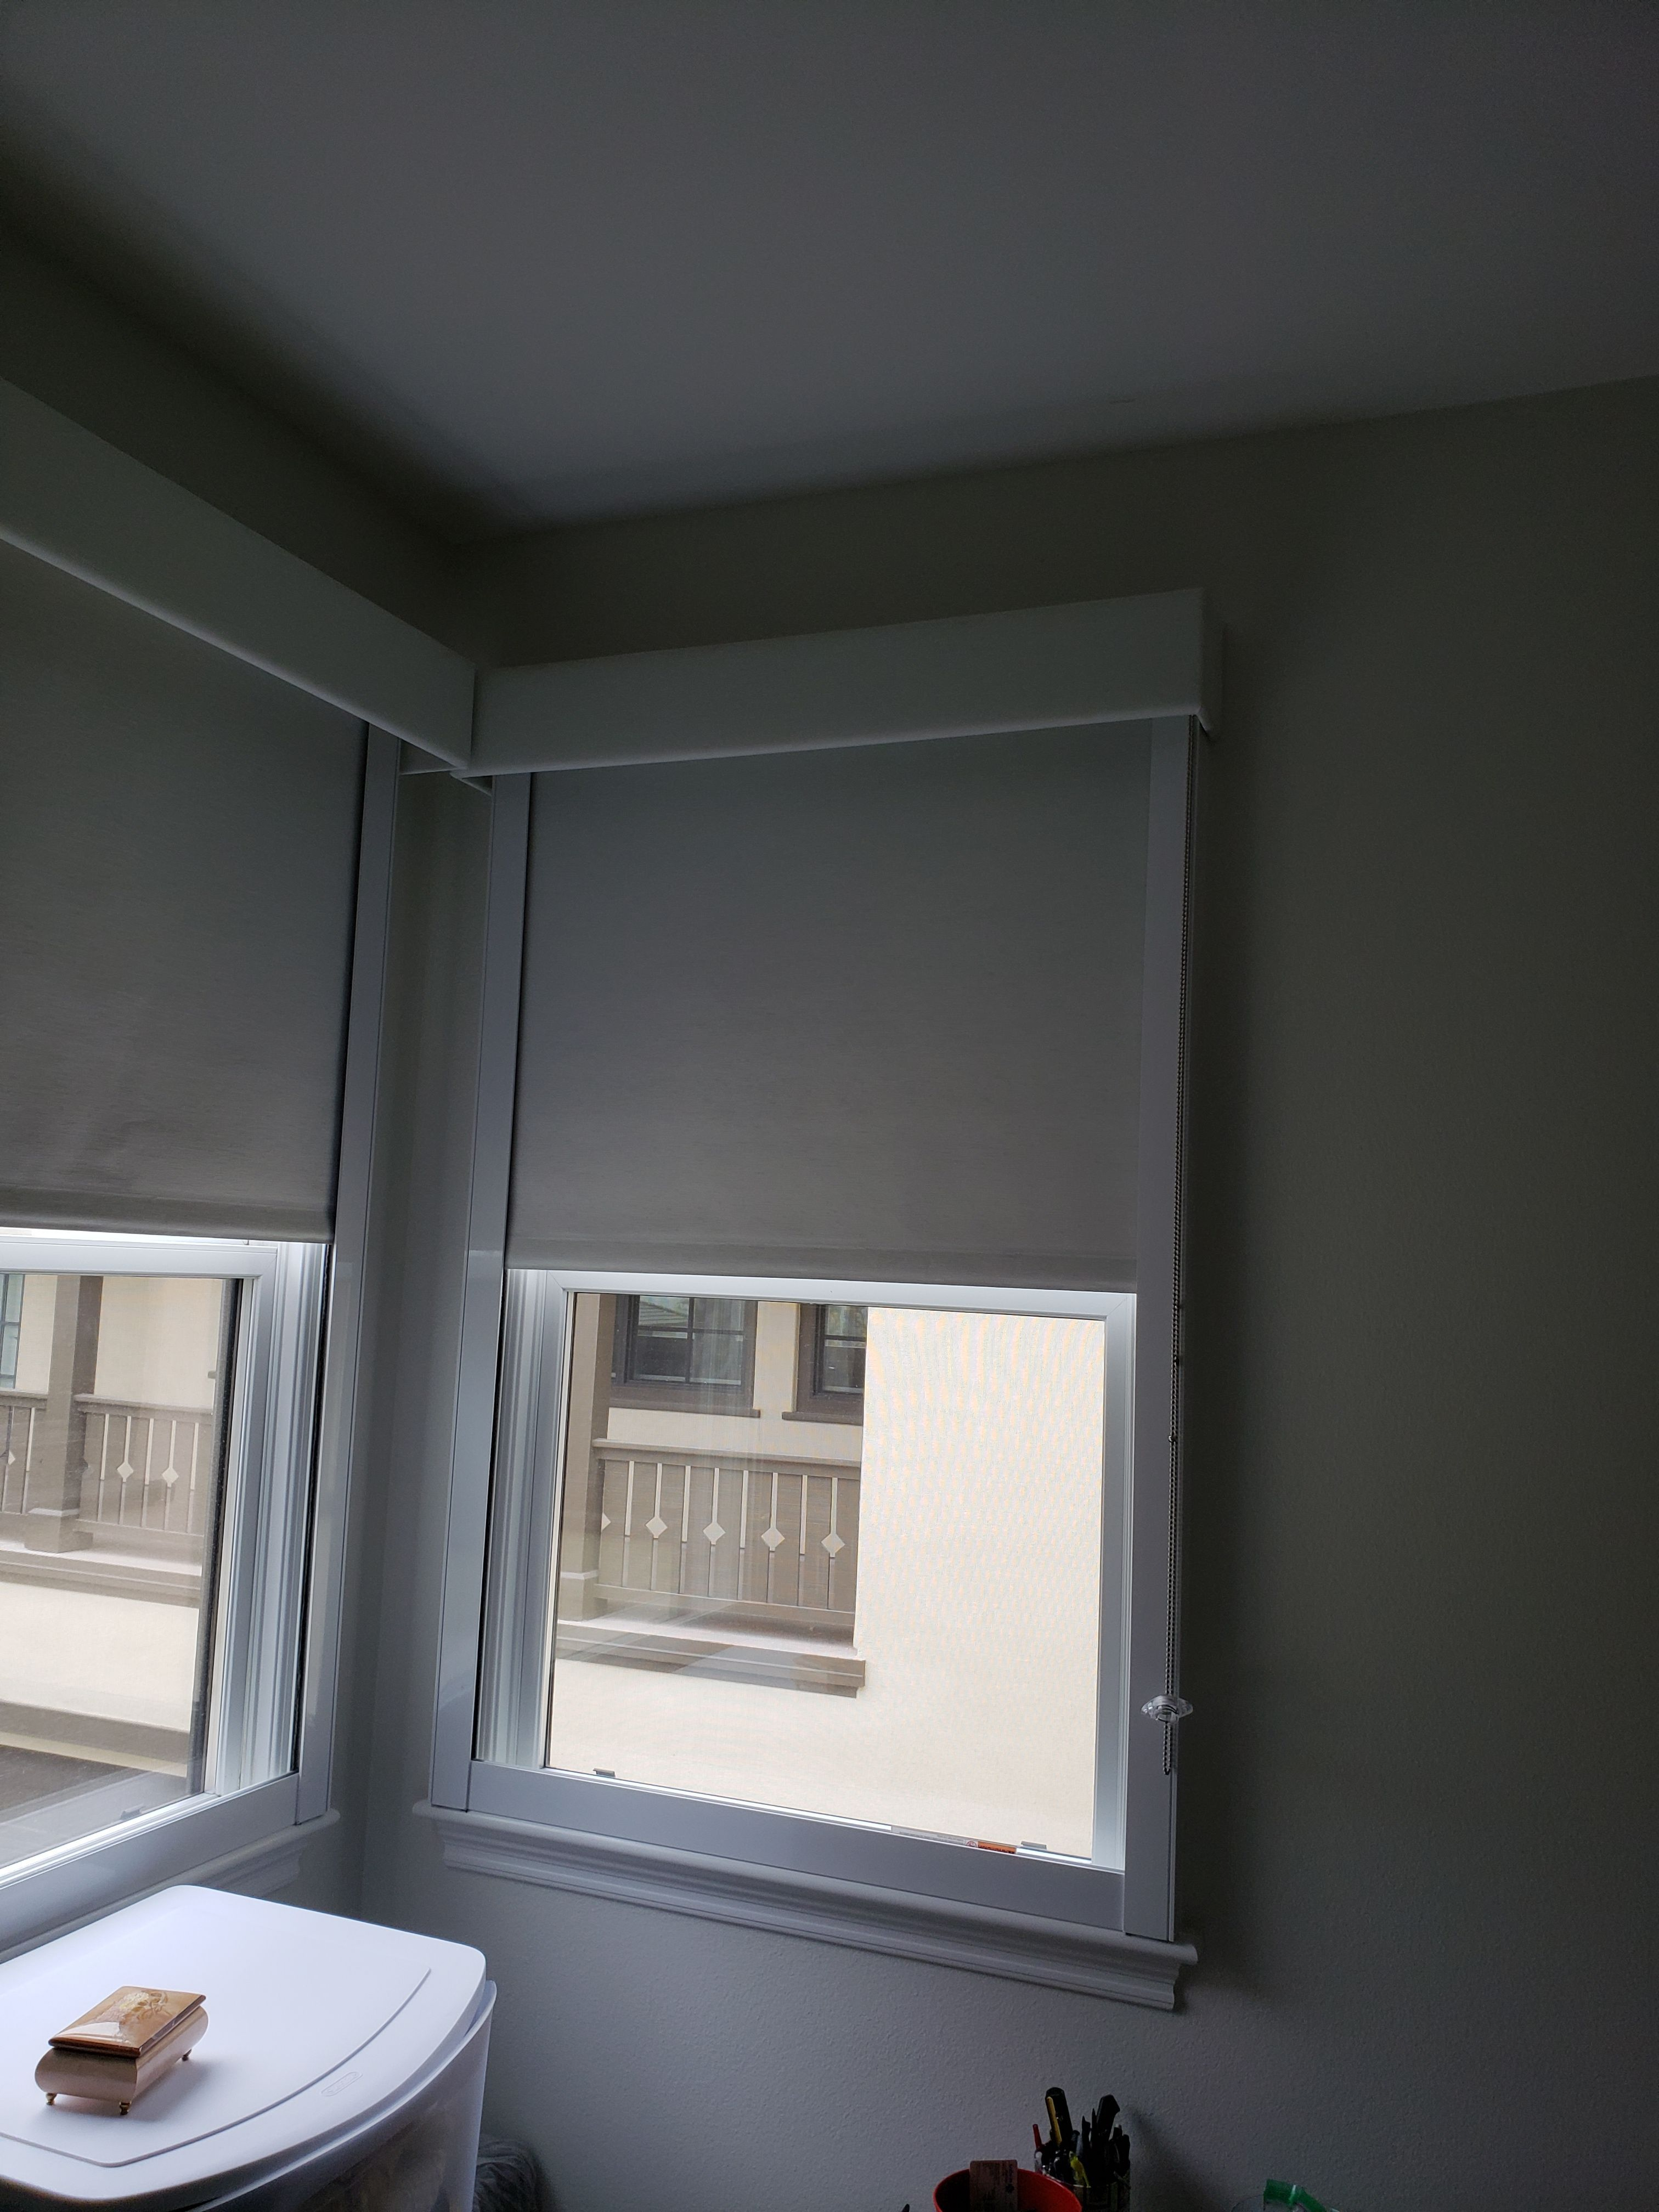 We Installed Blackout Indoor Roller Shades With Side